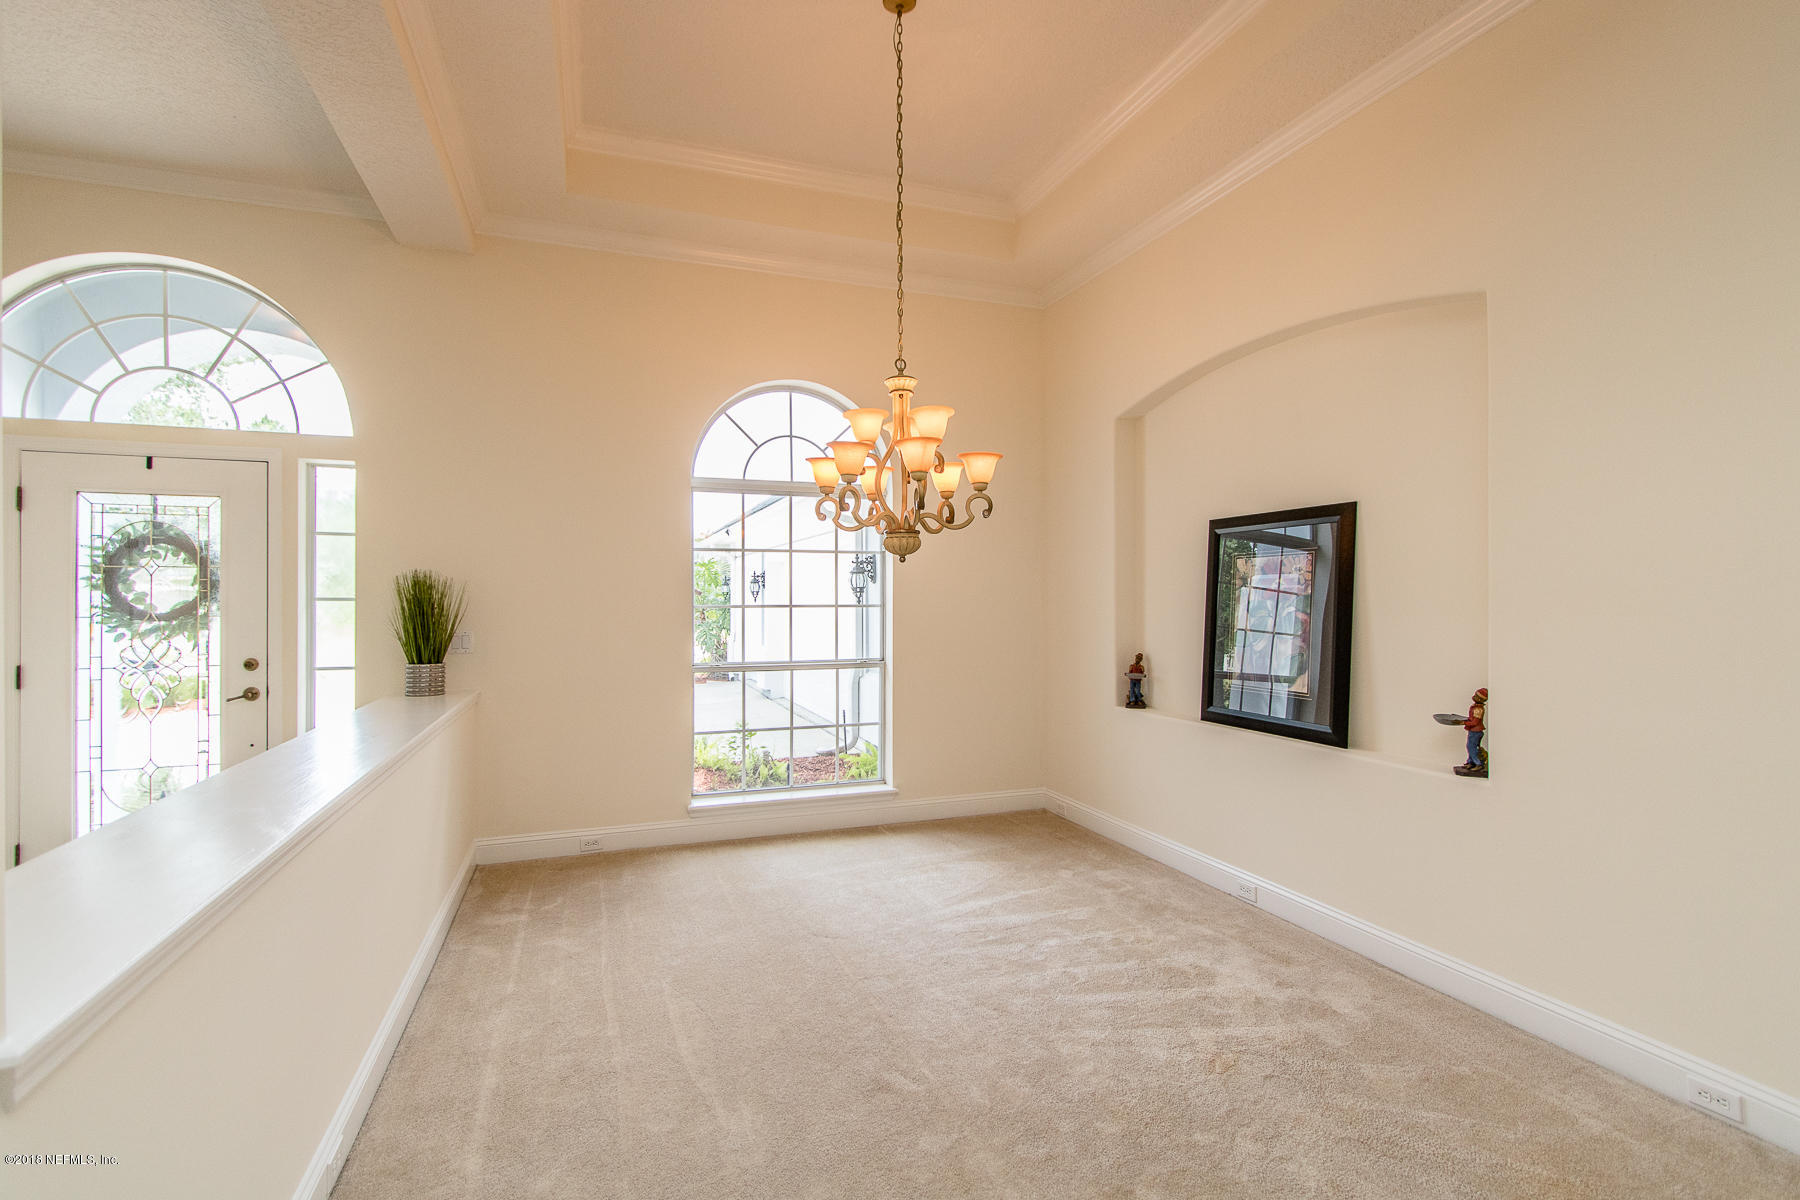 3959 ROYAL PINES, ORANGE PARK, FLORIDA 32065, 5 Bedrooms Bedrooms, ,4 BathroomsBathrooms,Residential - single family,For sale,ROYAL PINES,938654